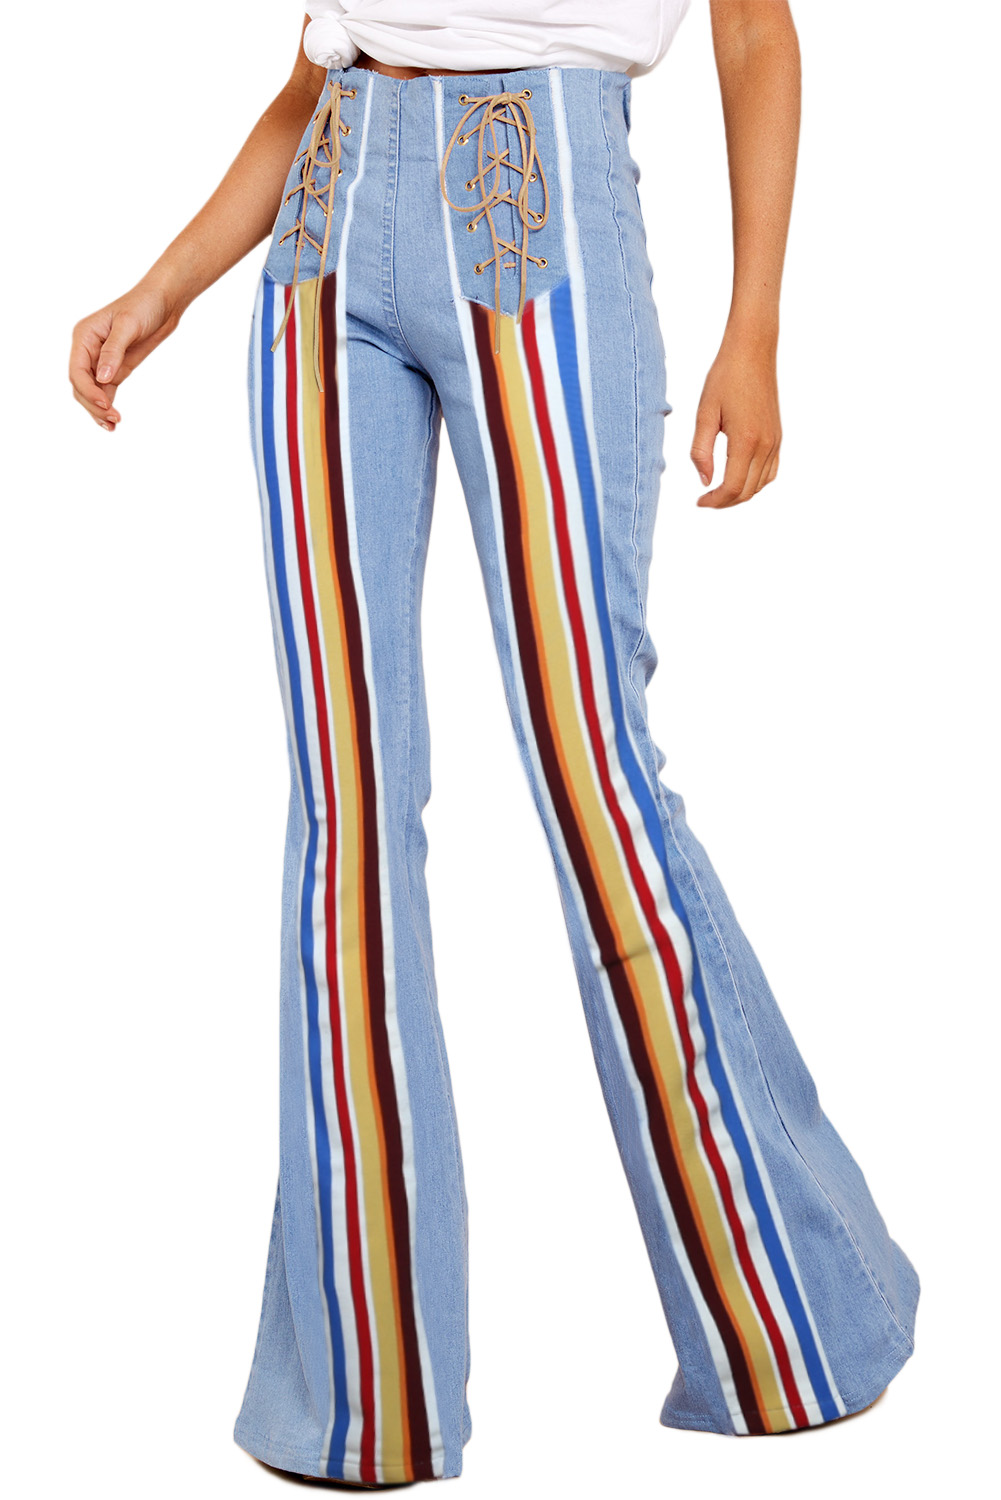 official images purchase authentic coupon codes Sky Blue Bring On The Peace Dark Denim Flare Jeans